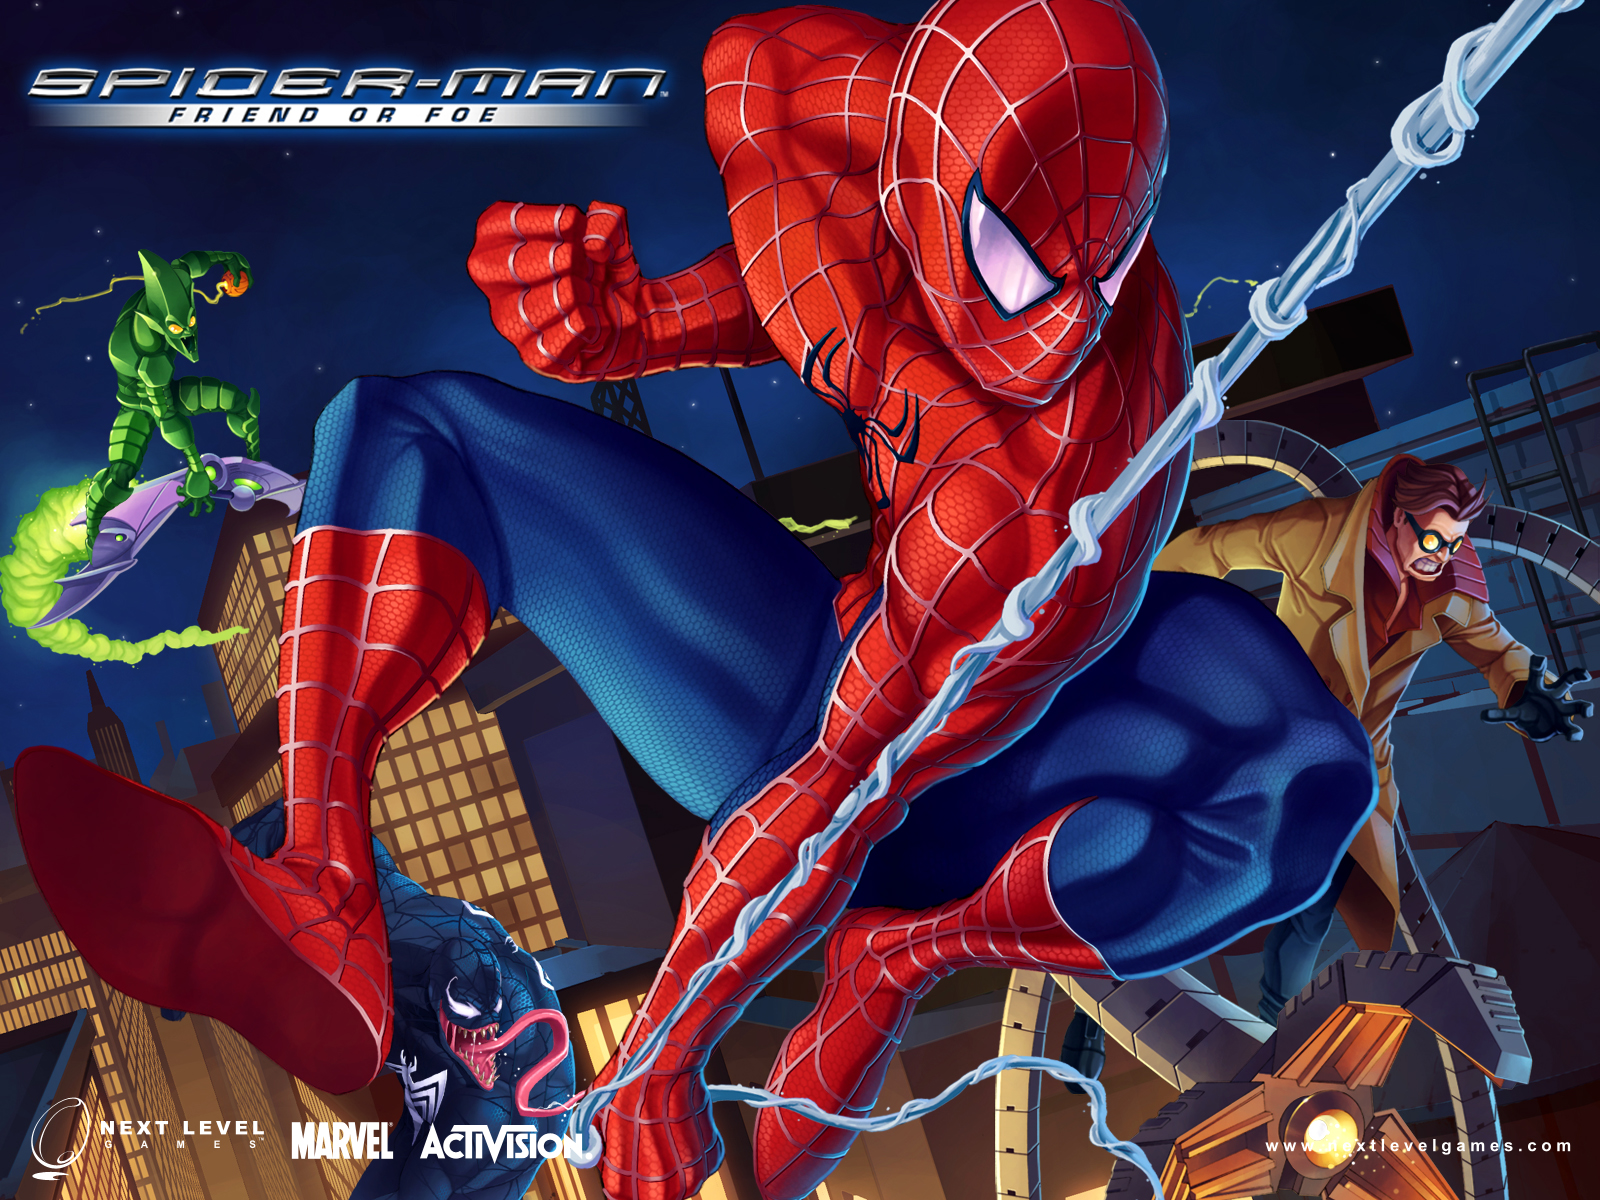 Game Of Spider Man Hd Wallpaper: Spiderman HD Wallpapers 1080p